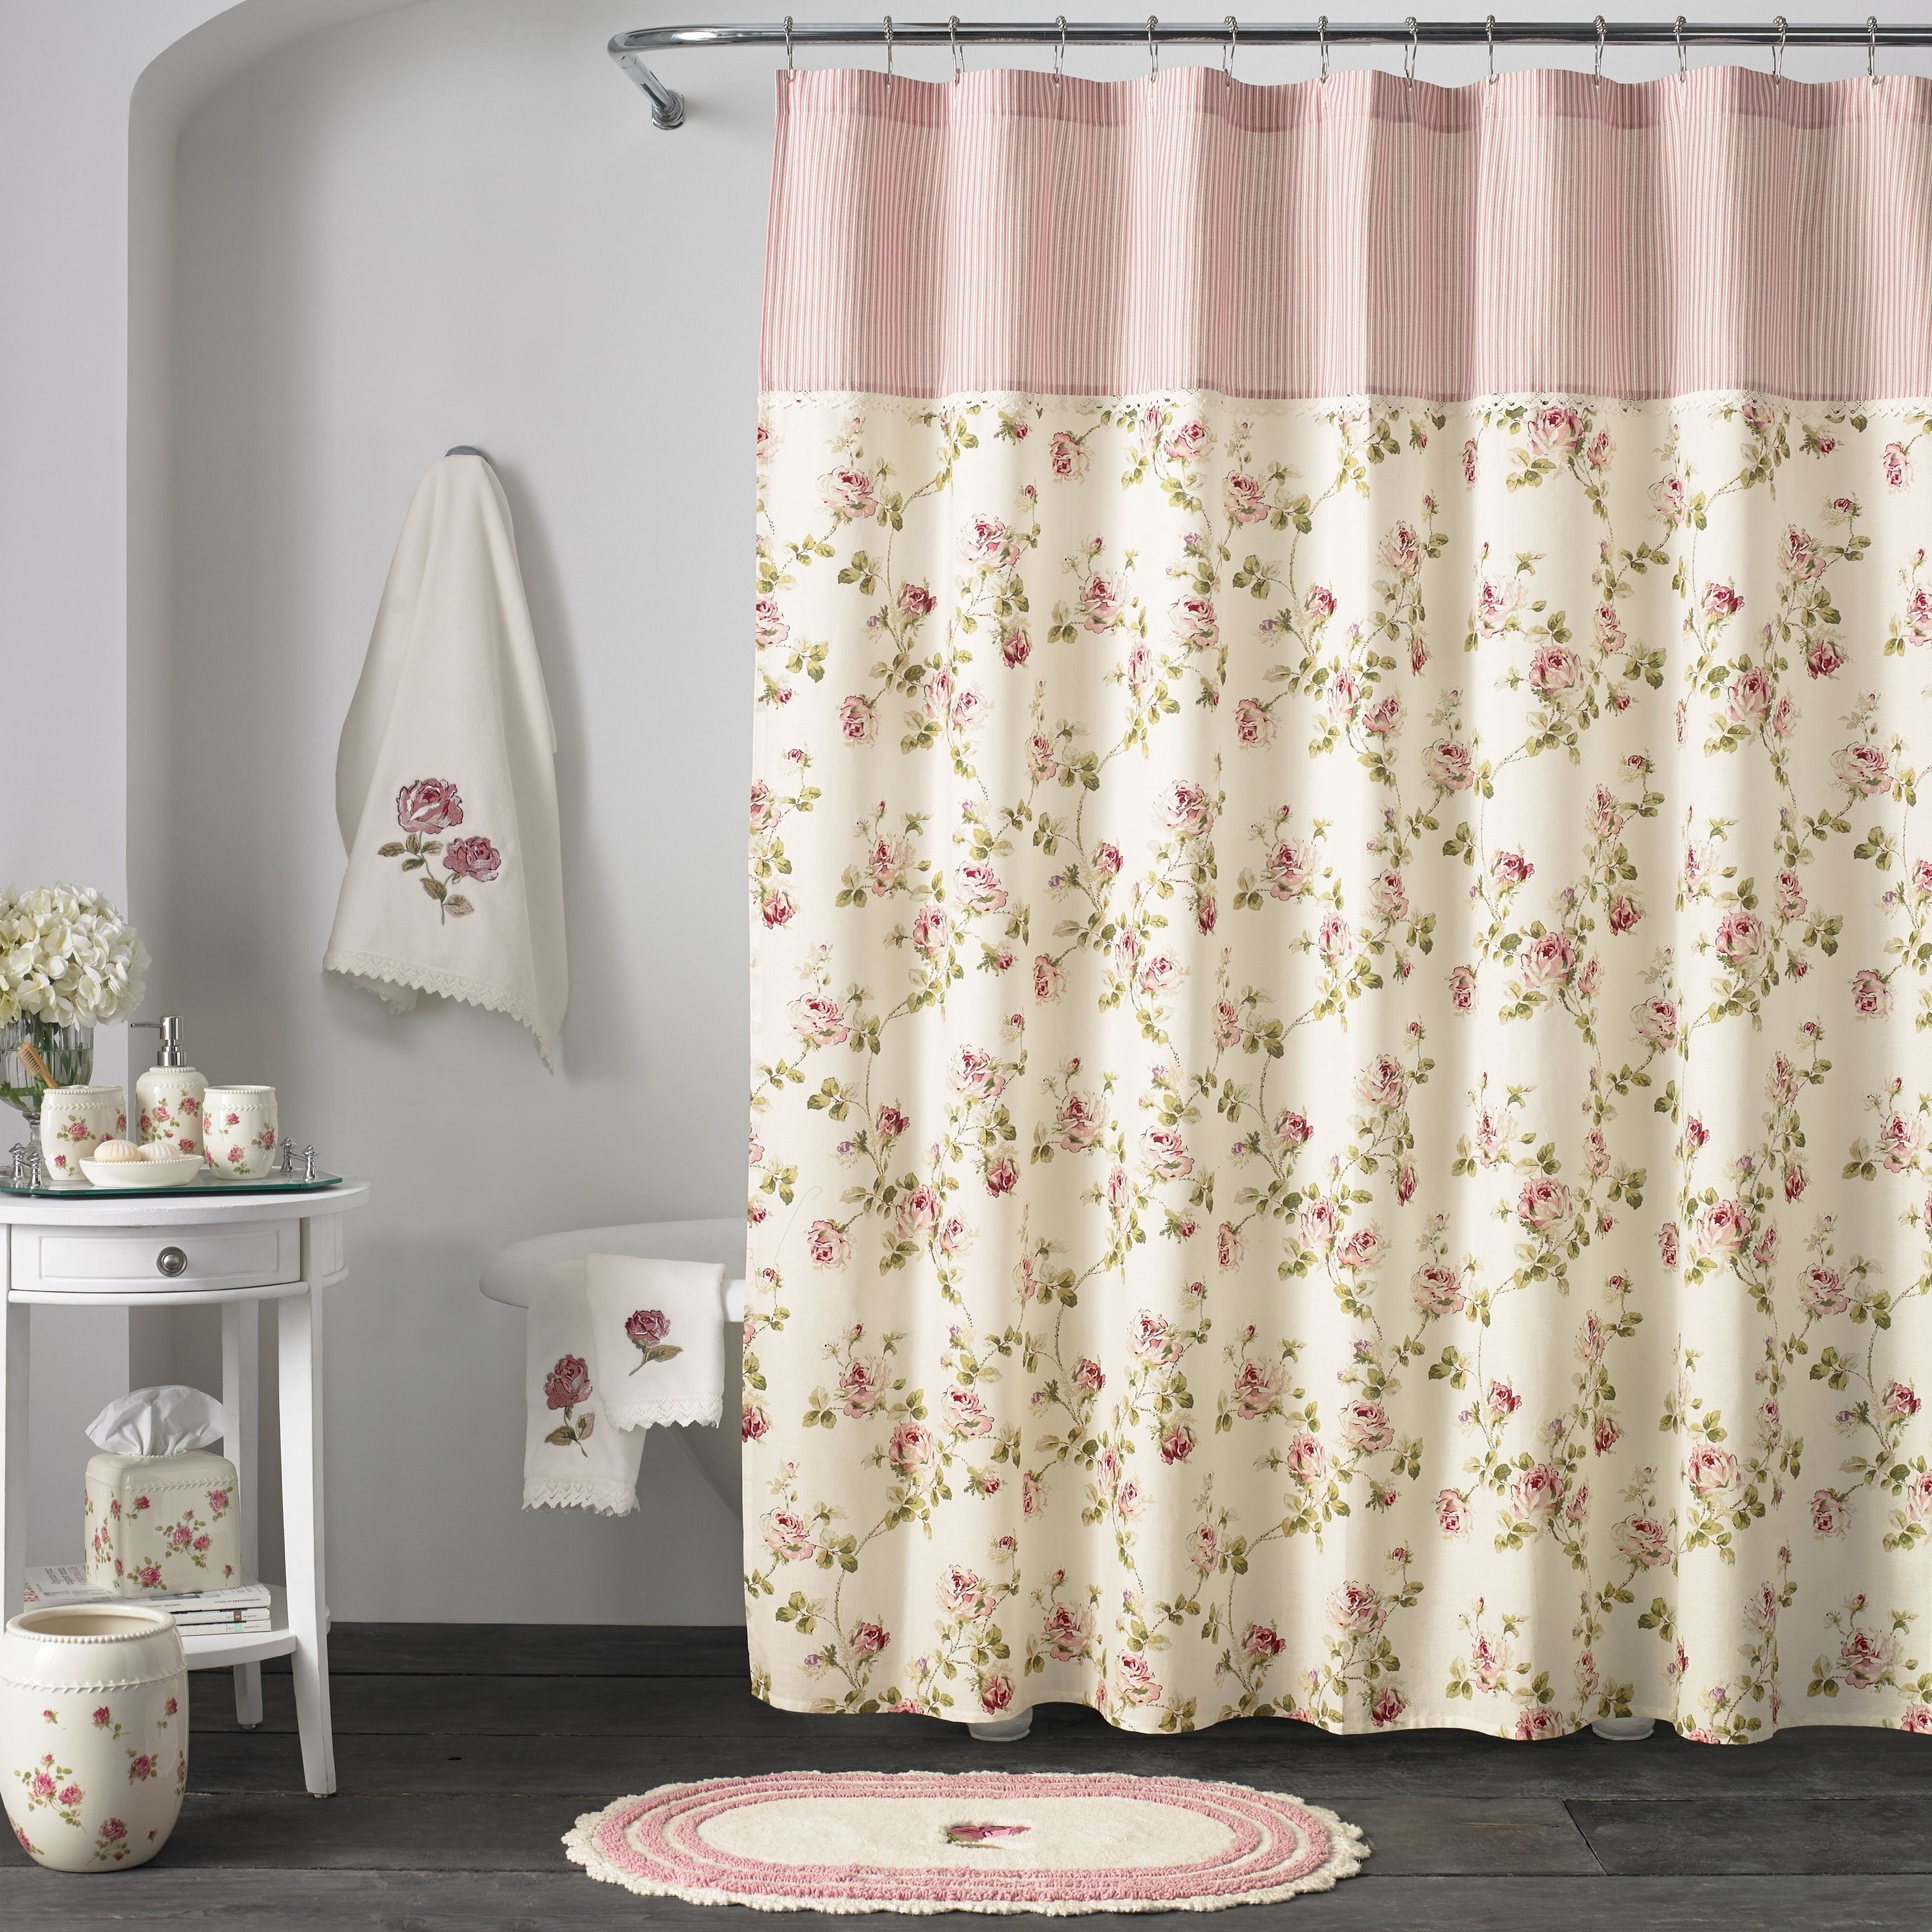 Five Queens Court Rosalind Floral Chic Shower Curtains Pink 70